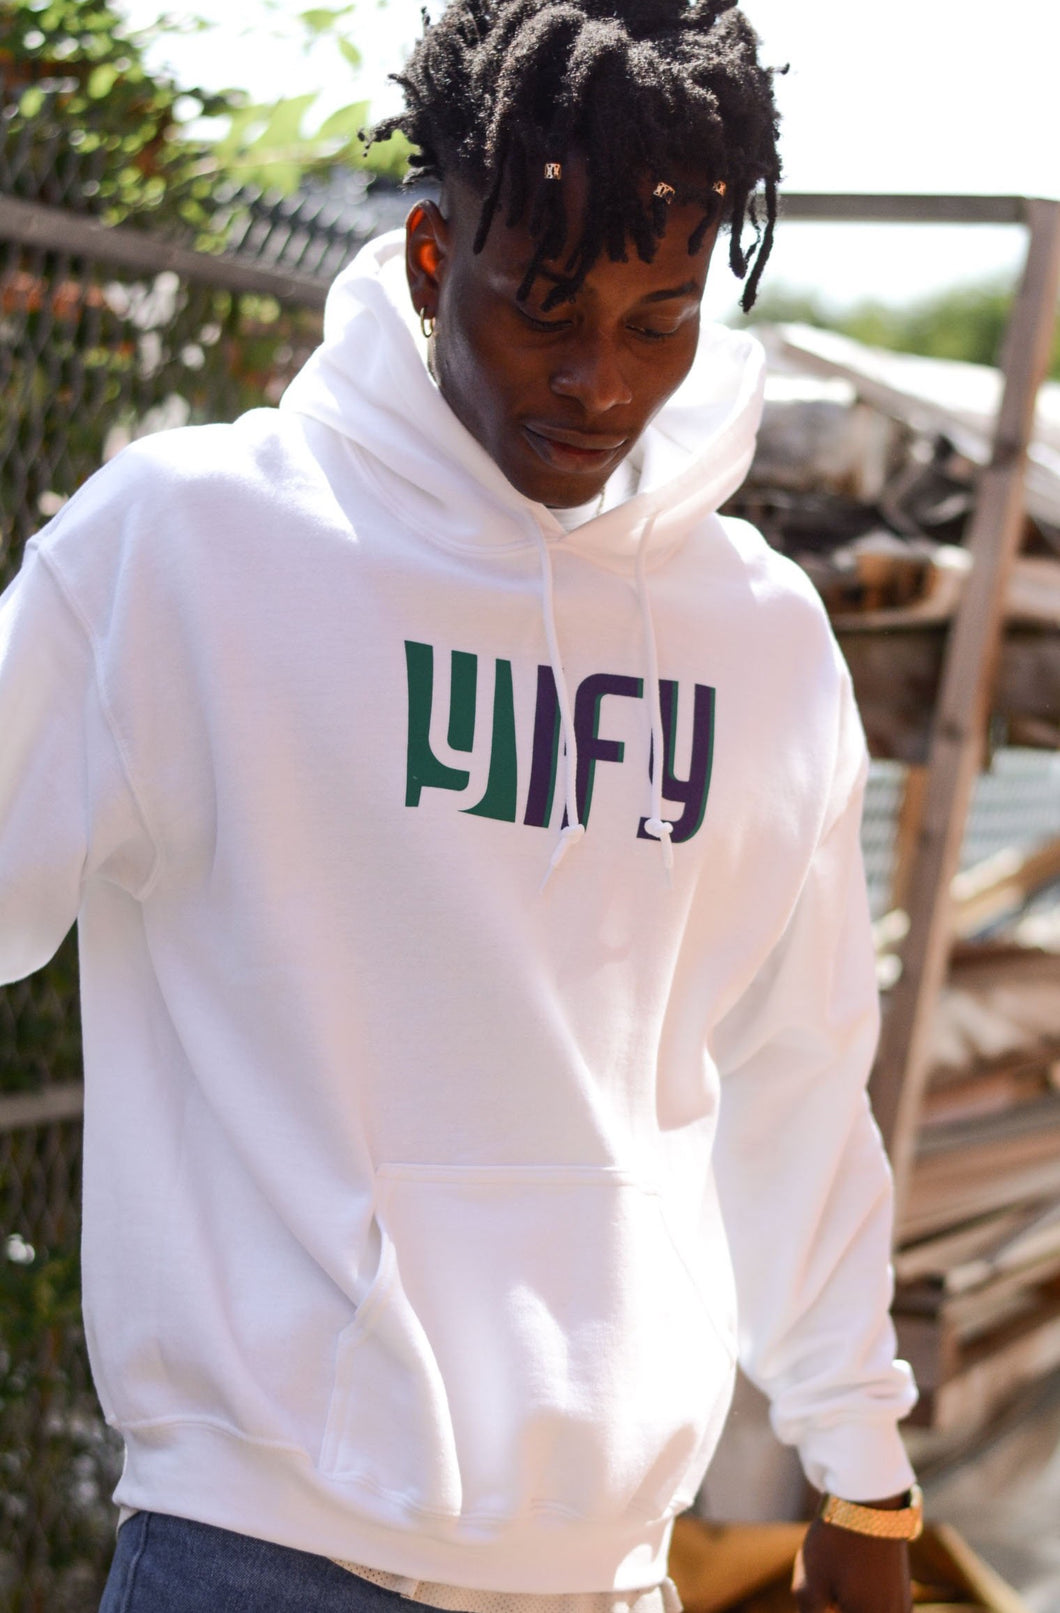 YIFY Hoodie in White with 2-Tone Logo